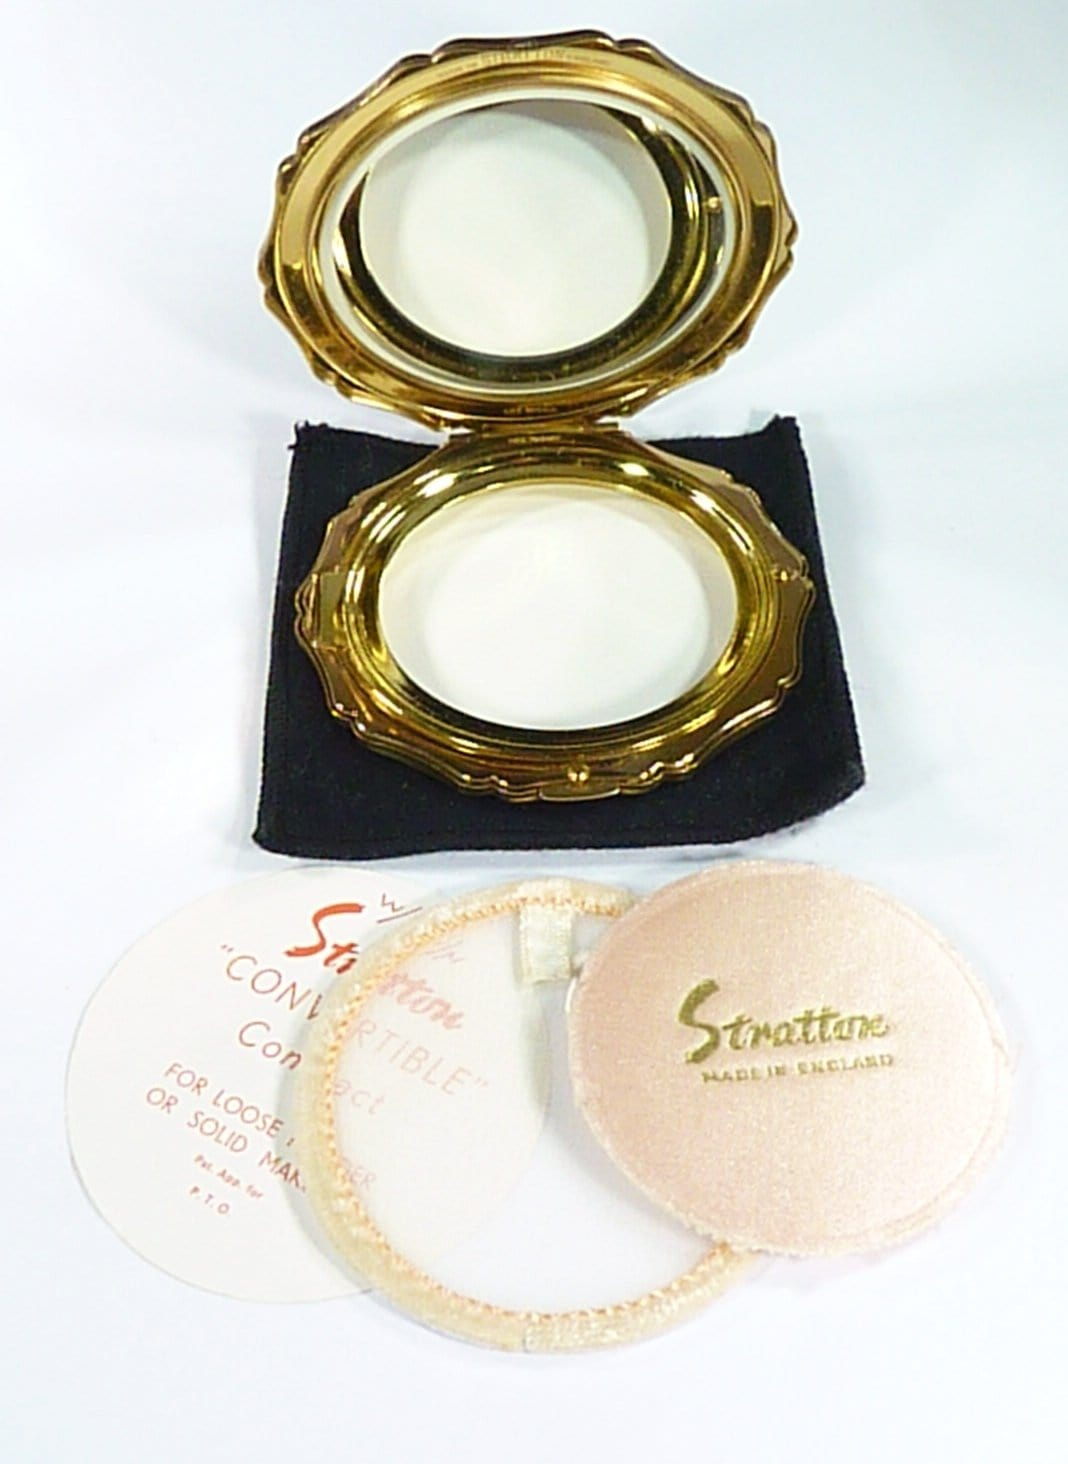 Stratton Compact With Puff & Sifter Unused